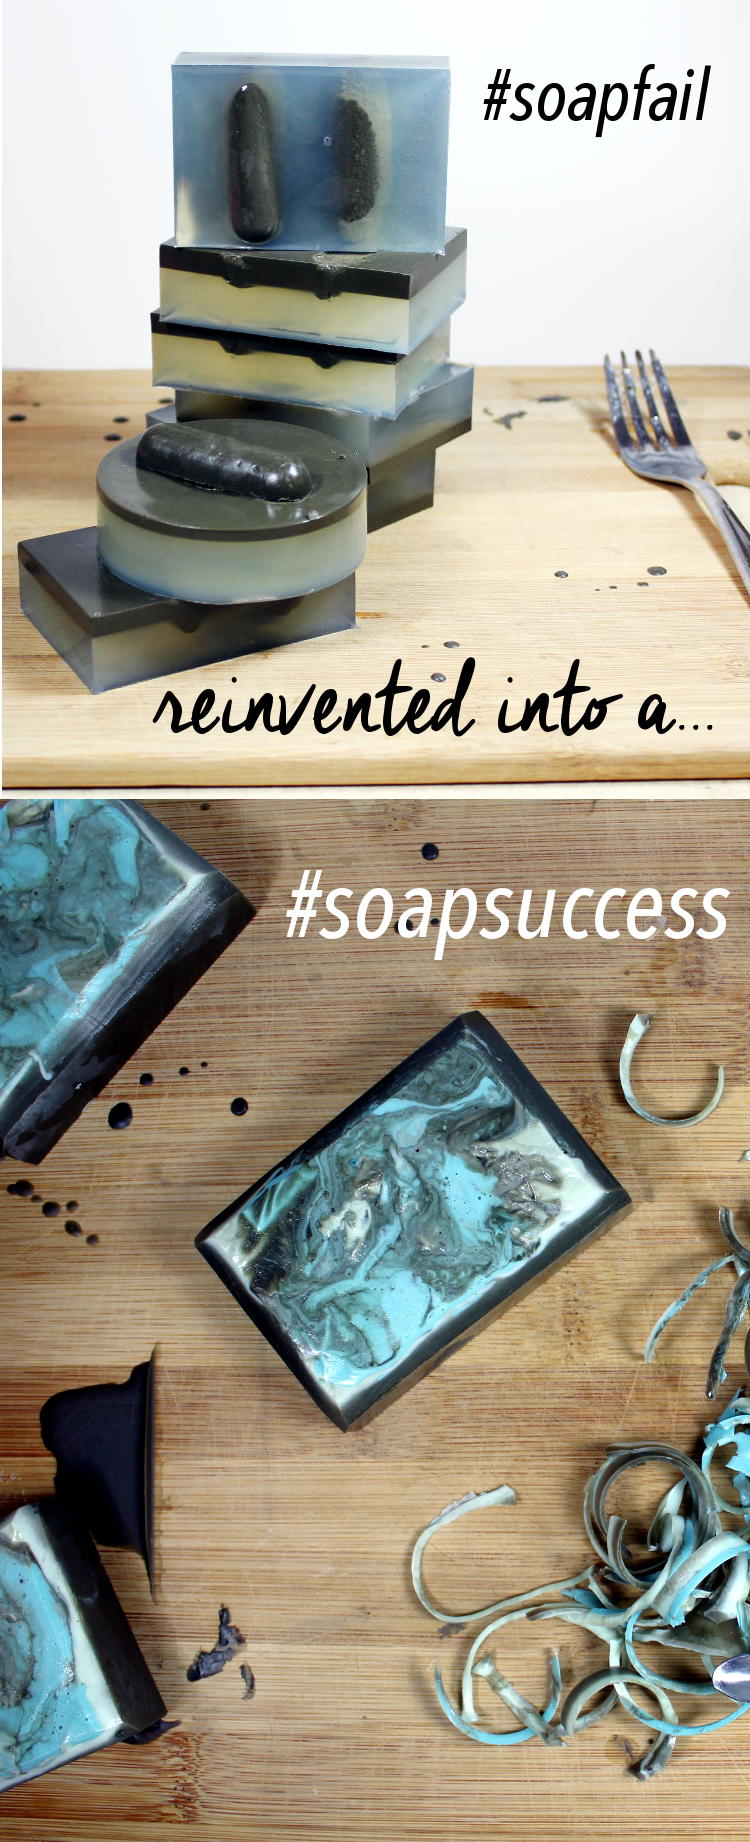 As a crafter and soapmaker, there are absolutely those days when an idea for a soap recipe you have in your head, does not execute the way you thought it would. This was one of those projects. However, with a little creativity, I was able to turn a #soapfail into a #soapsuccess! Learn how I turned my #soapfail around and find out how to make your own melt and pour tea tree and sea mud soaps!